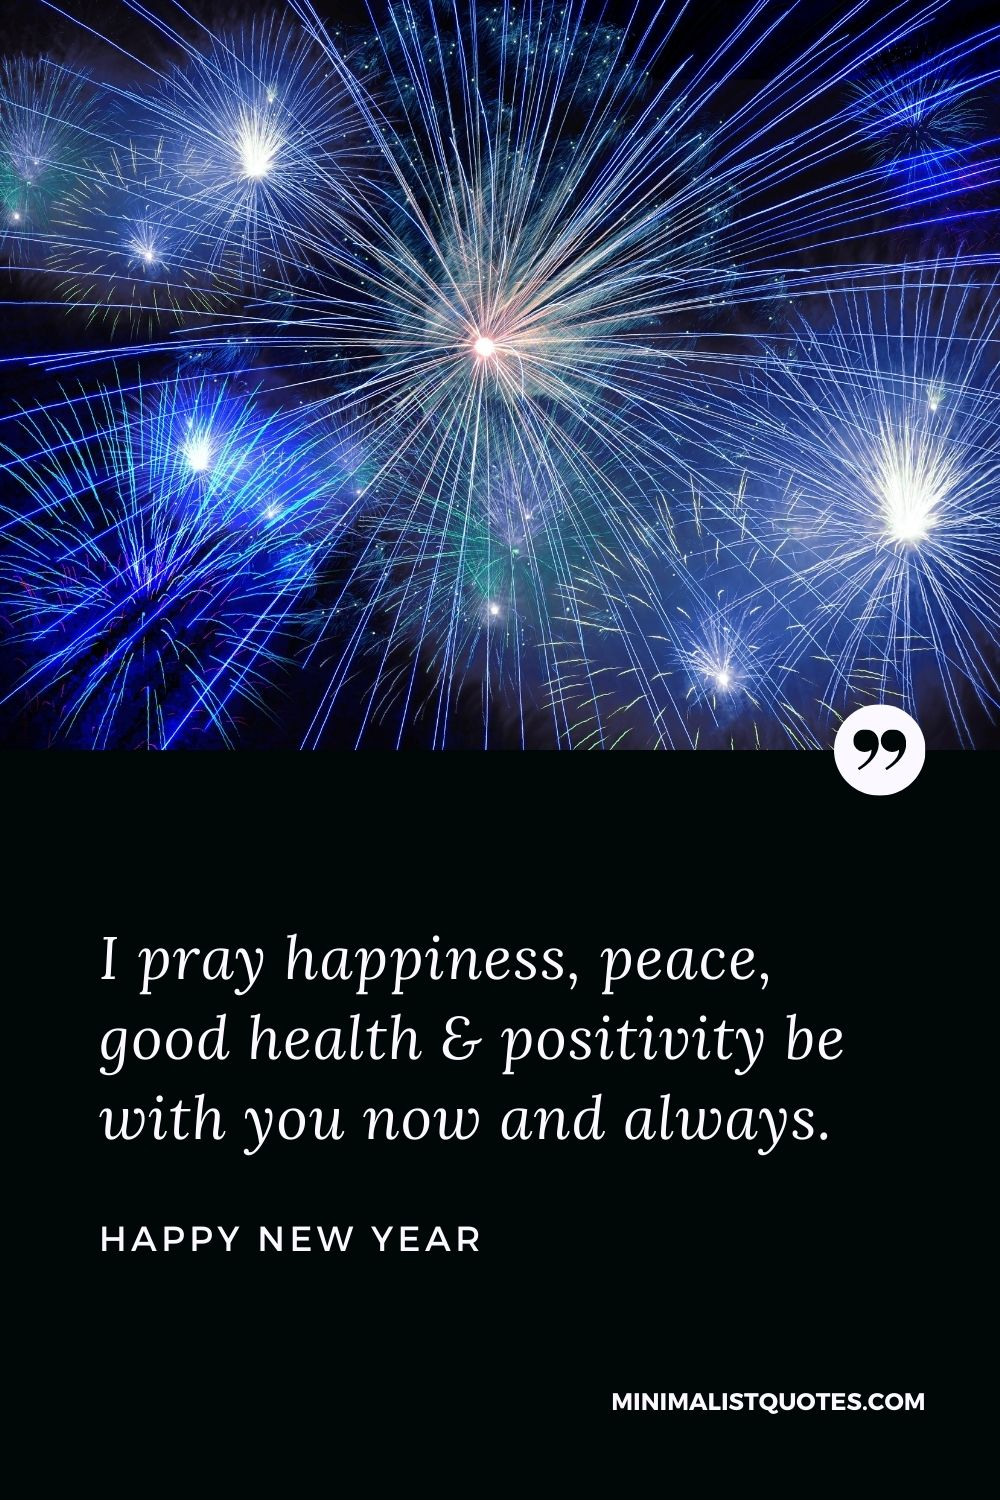 New Year Wish - I pray happiness, peace, good health & positivitybe with you now and always.